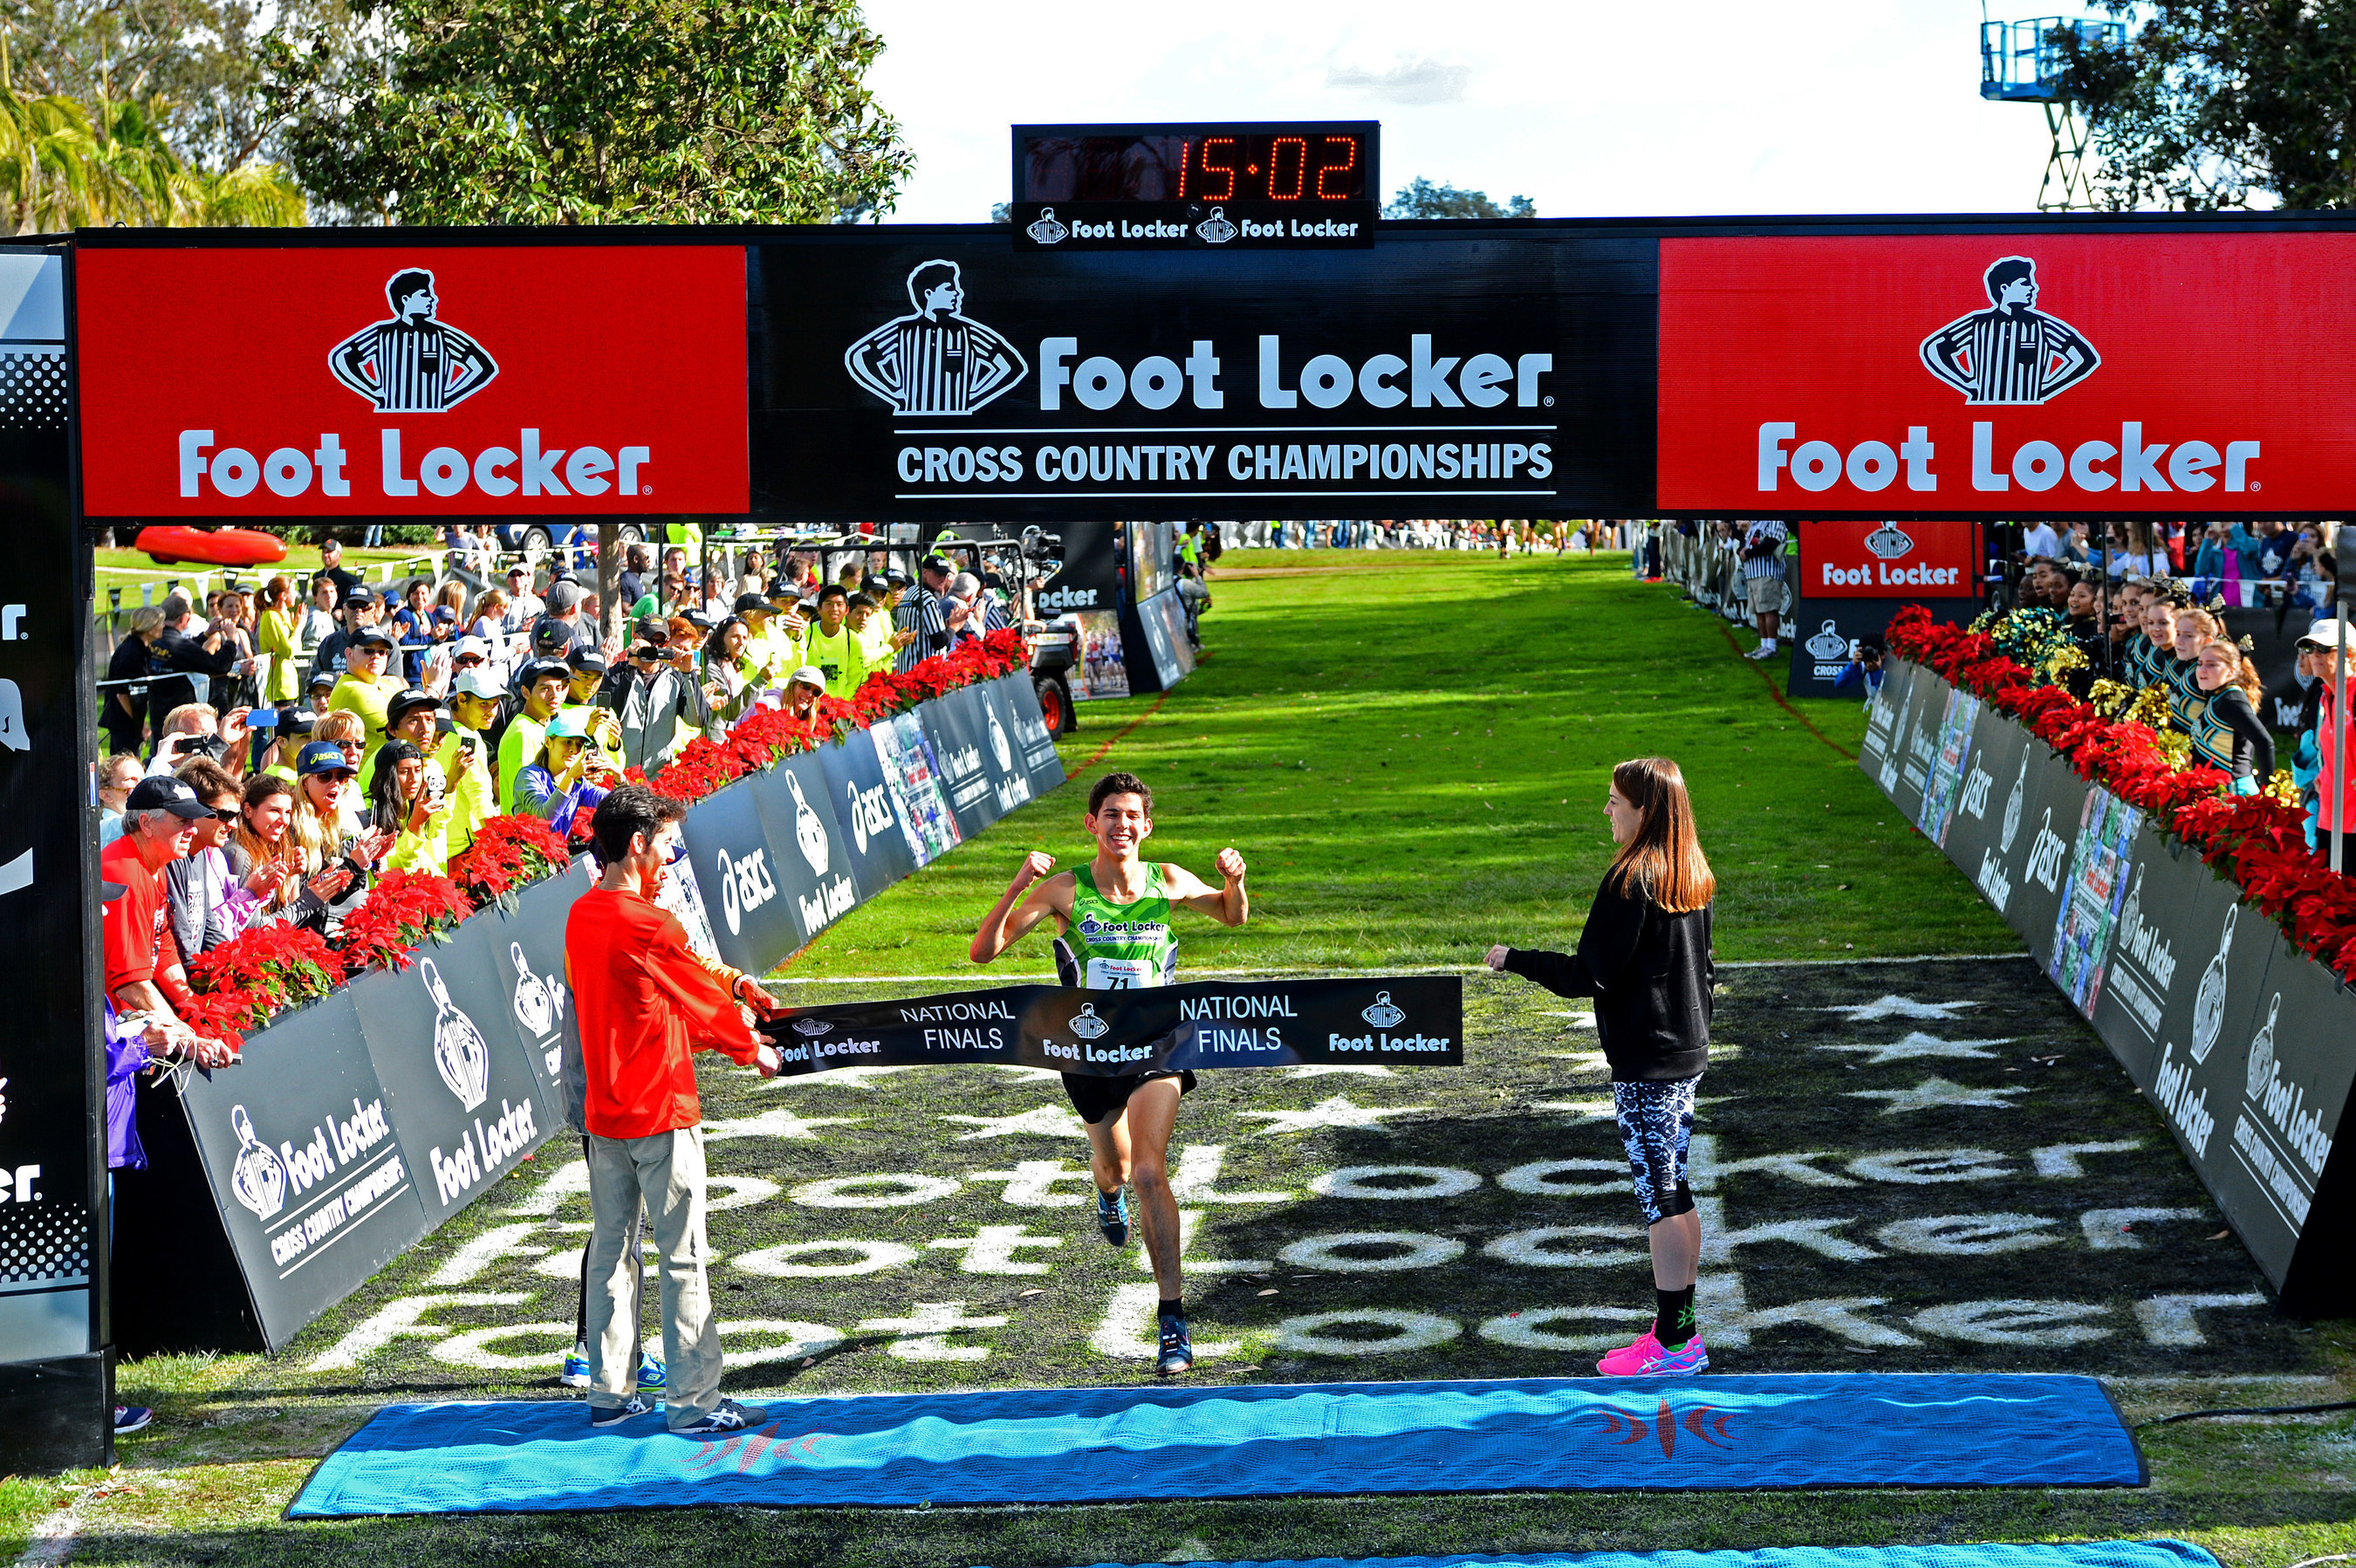 Defending Champion Grant Fisher of Grand Blanc, Mich., captured the first place title at the 36th Annual Foot ...